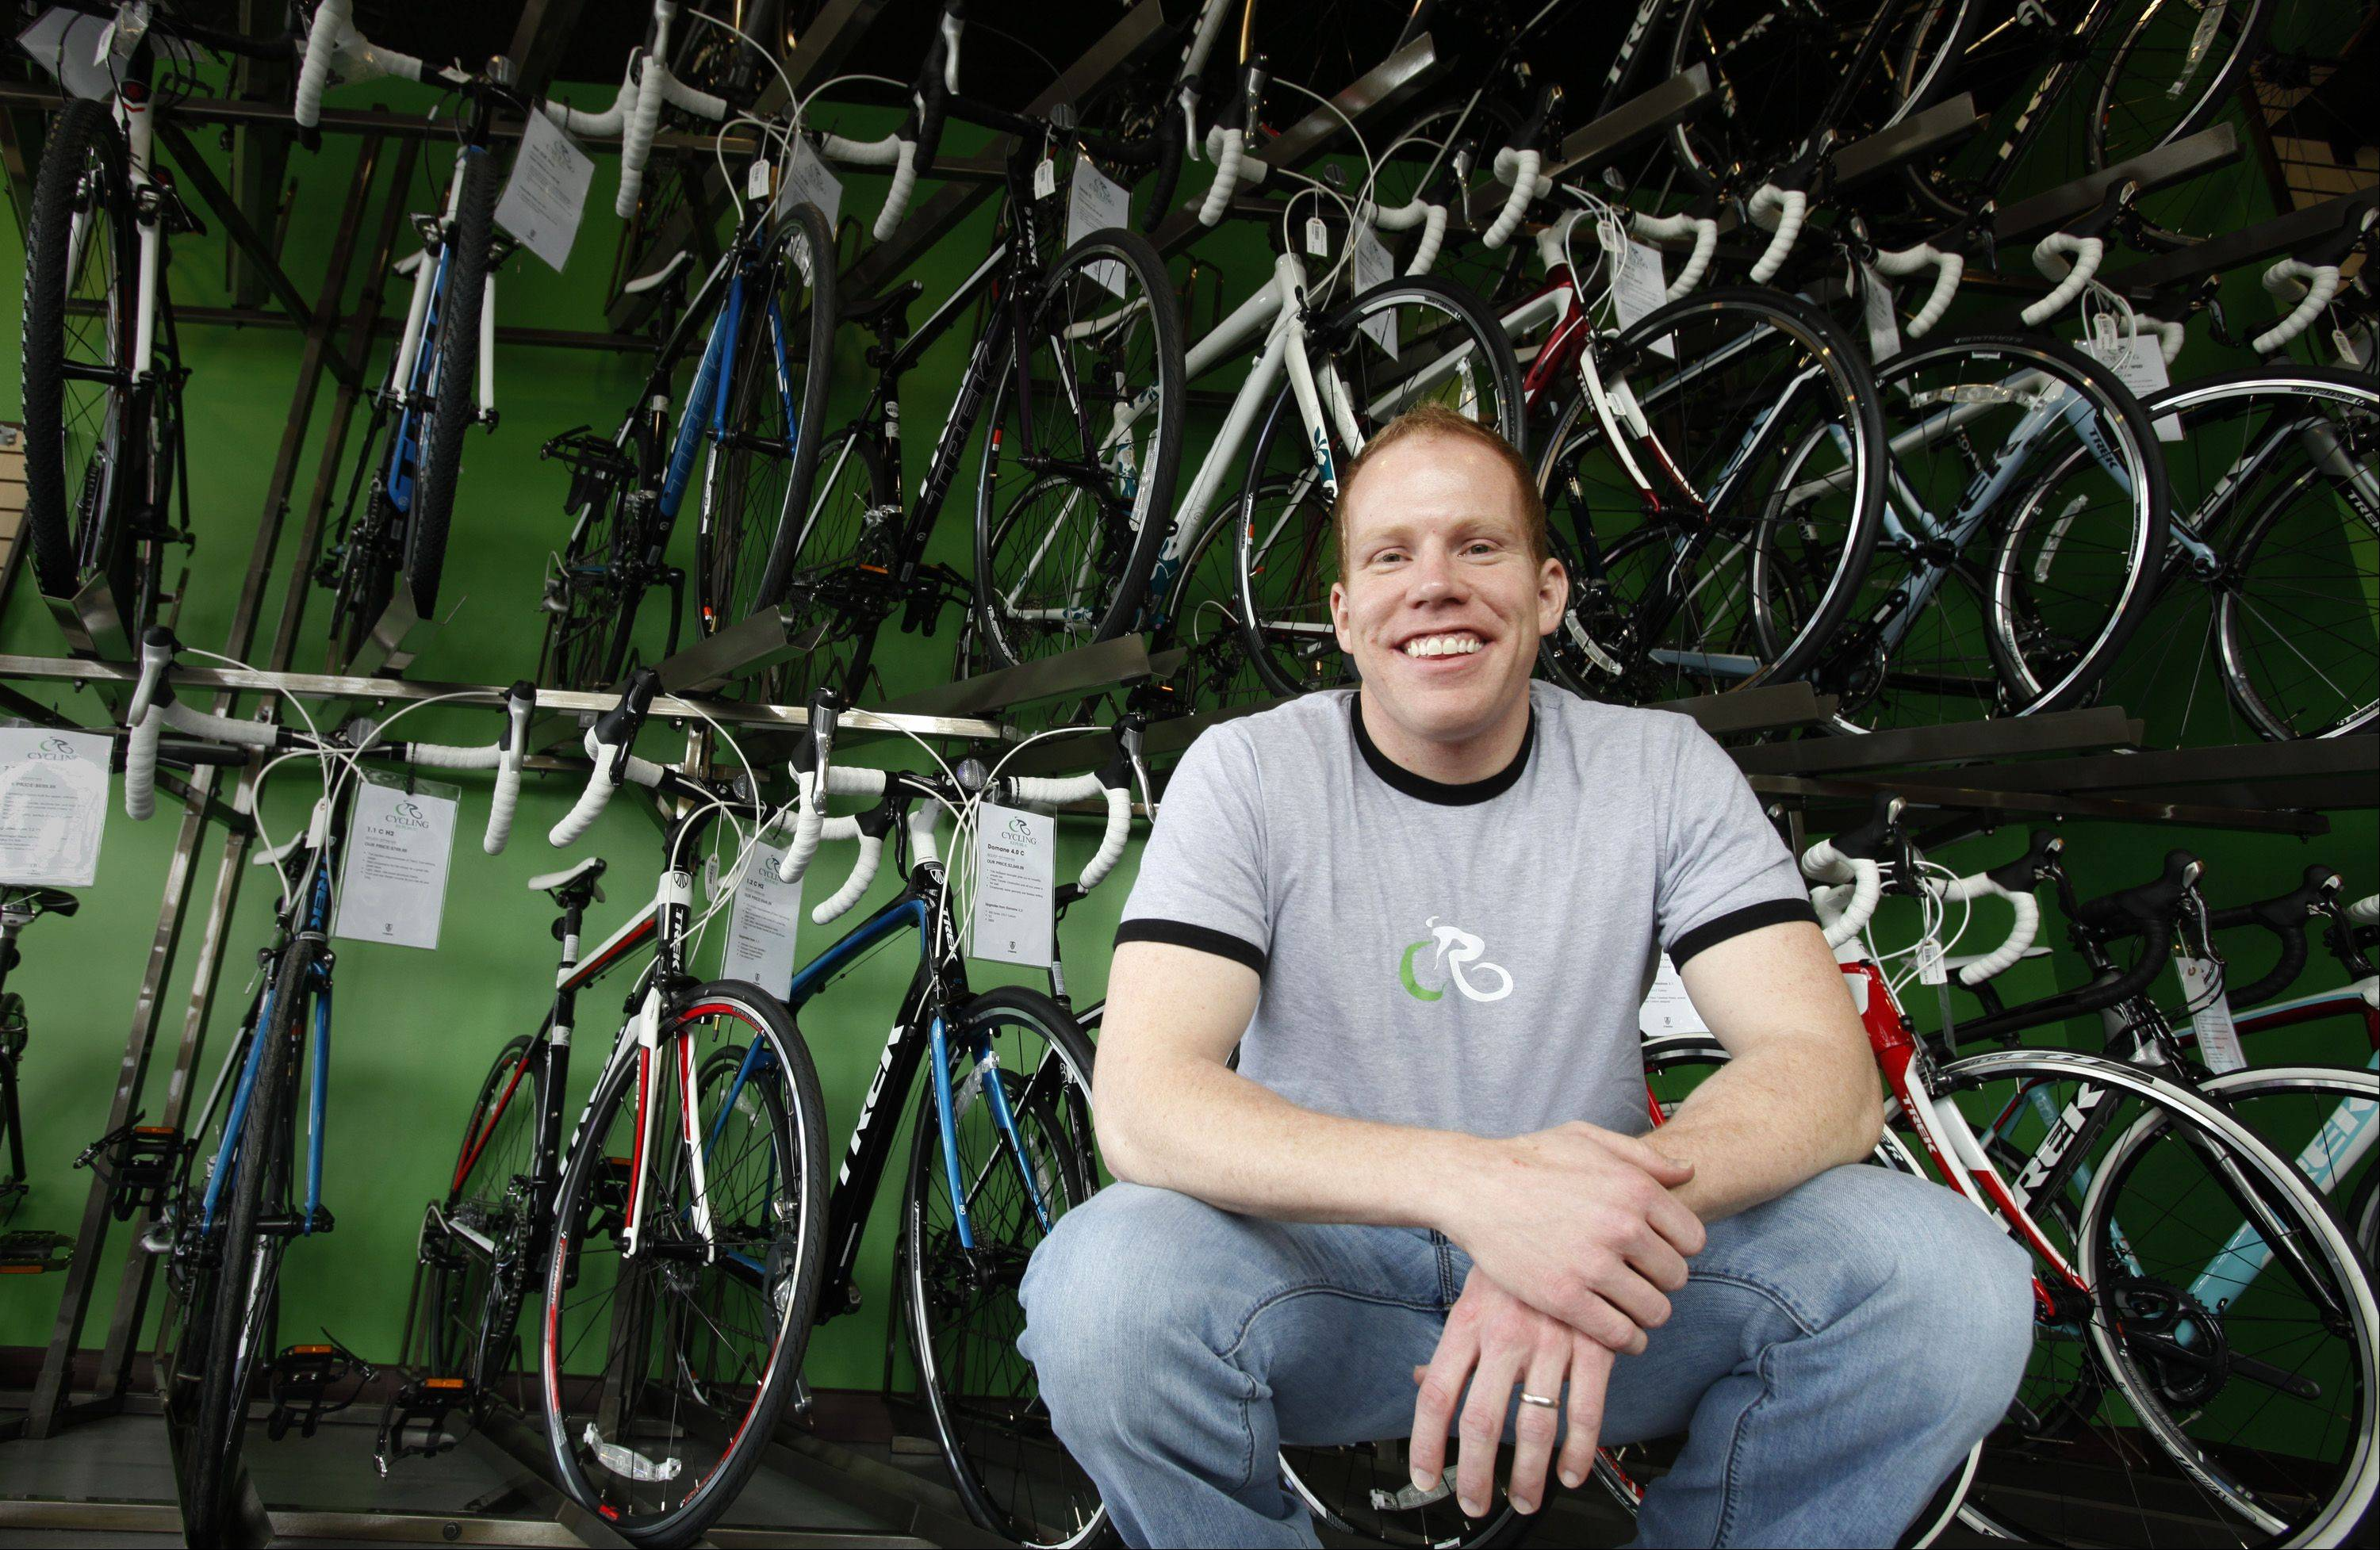 Robert Sanders owns Cycling Republic on Randall Road, a new cycling store featuring road and mountain bikes, and accessories.